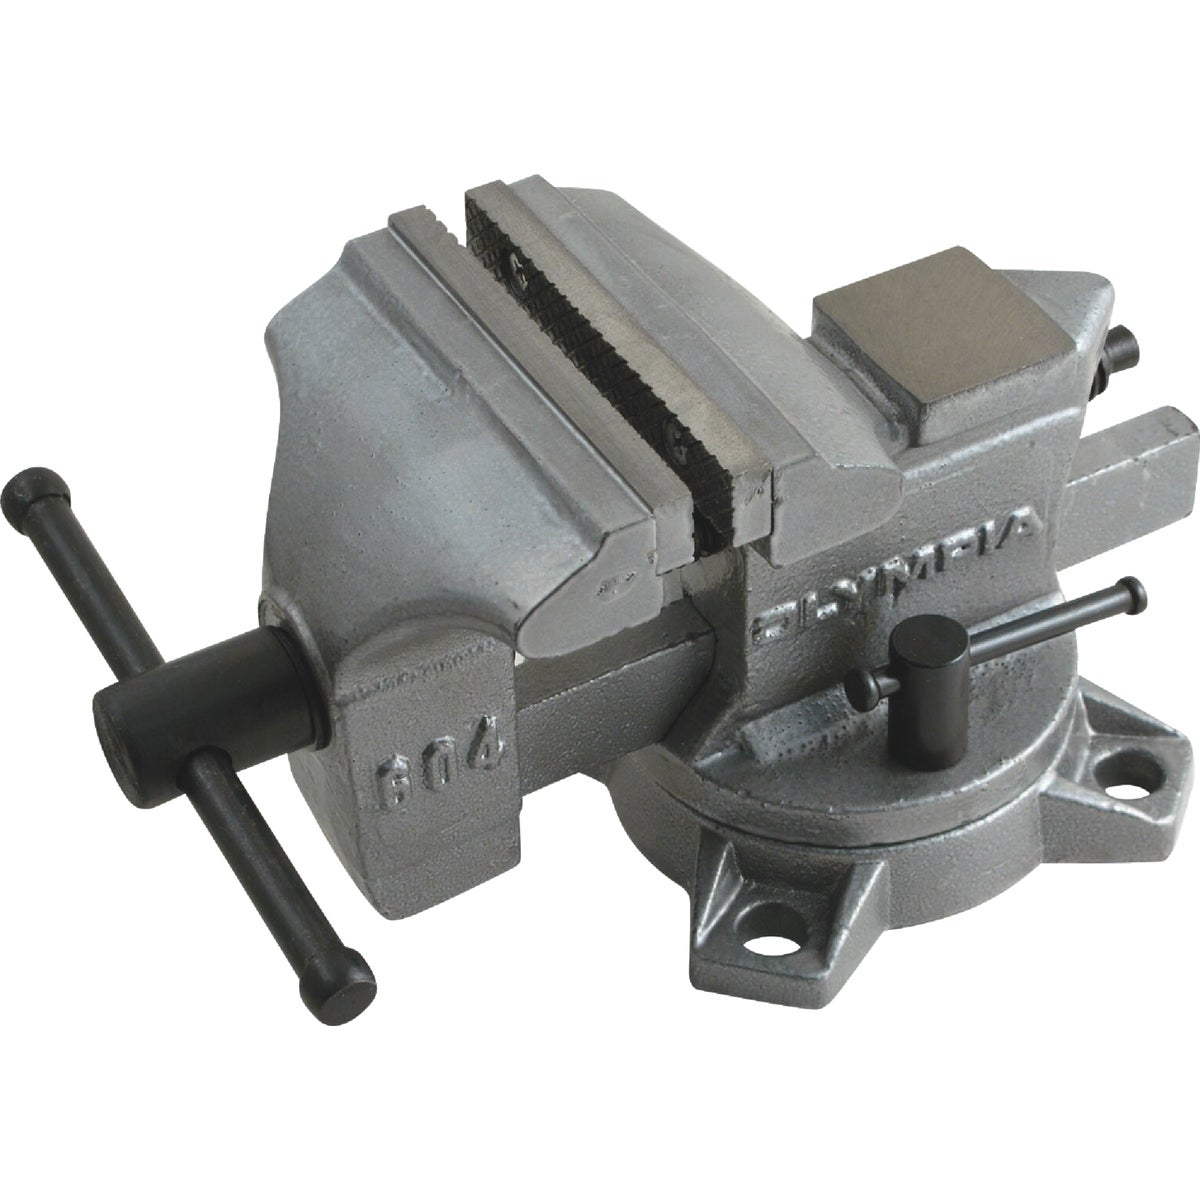 "4"" WORKSHOP BENCH VISE"